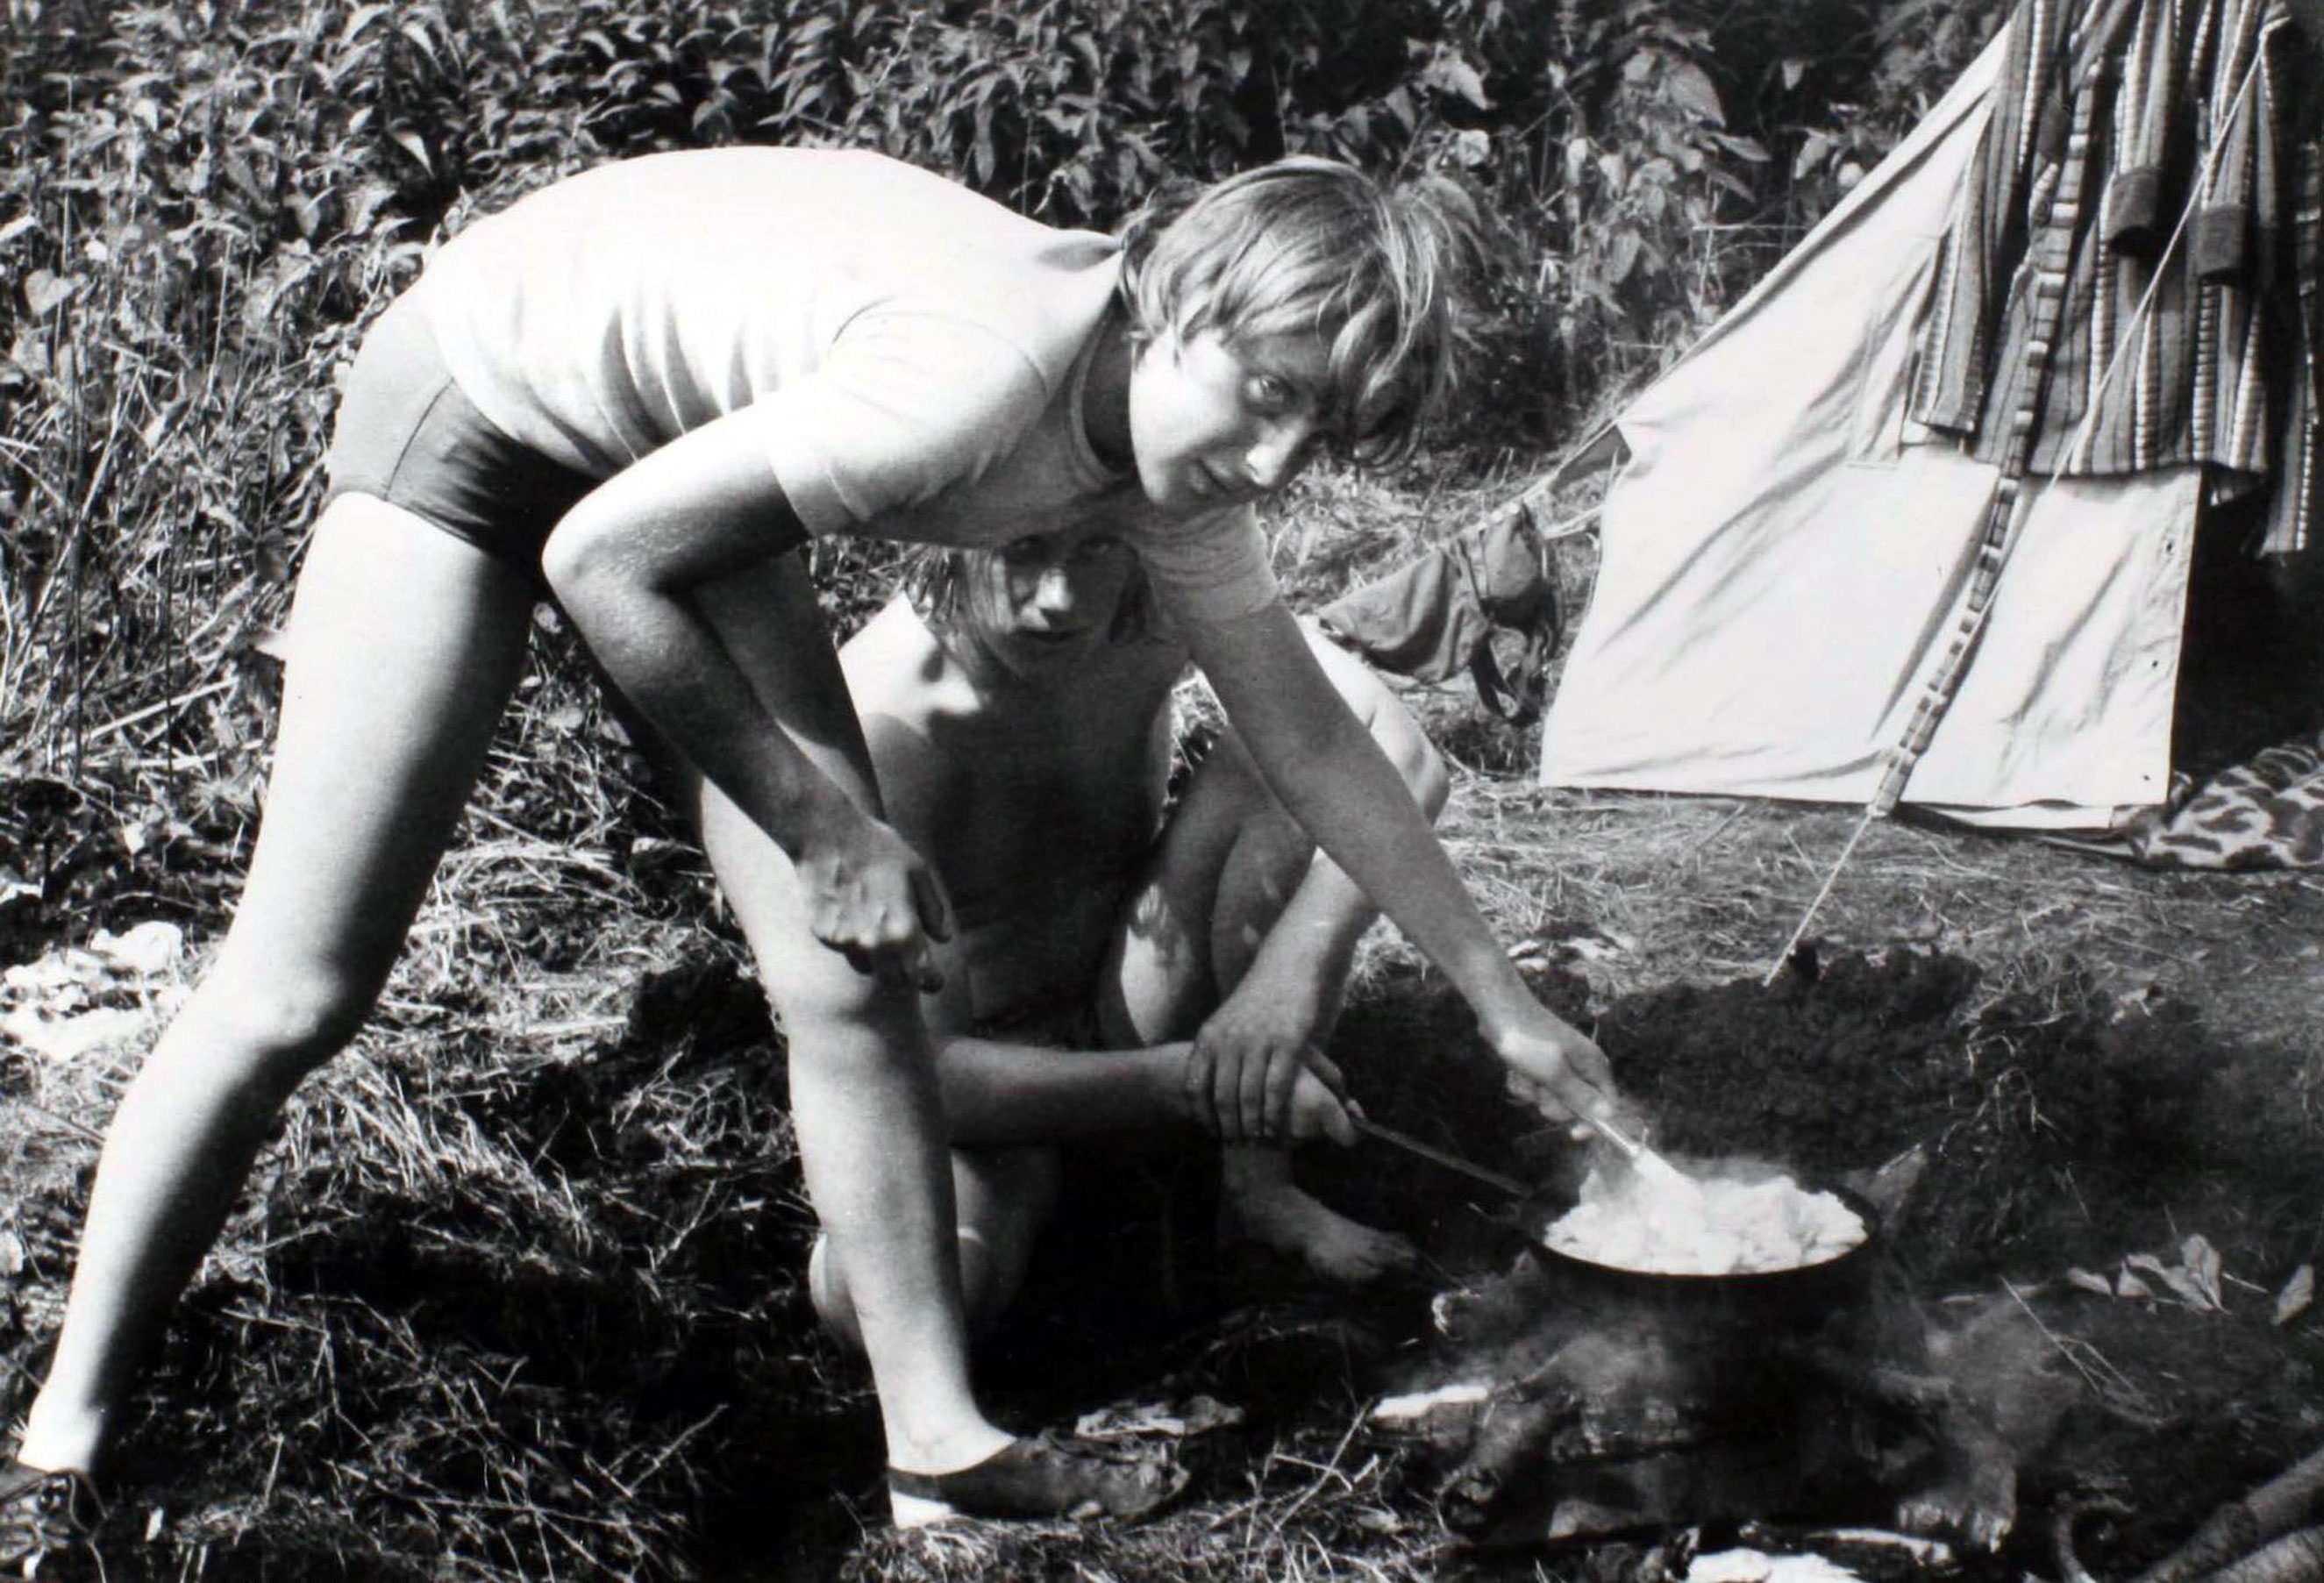 Angela Kasner prepares a meal on a campfire while camping with friends in Himmelpfort, German Democratic Republic in July 1973.